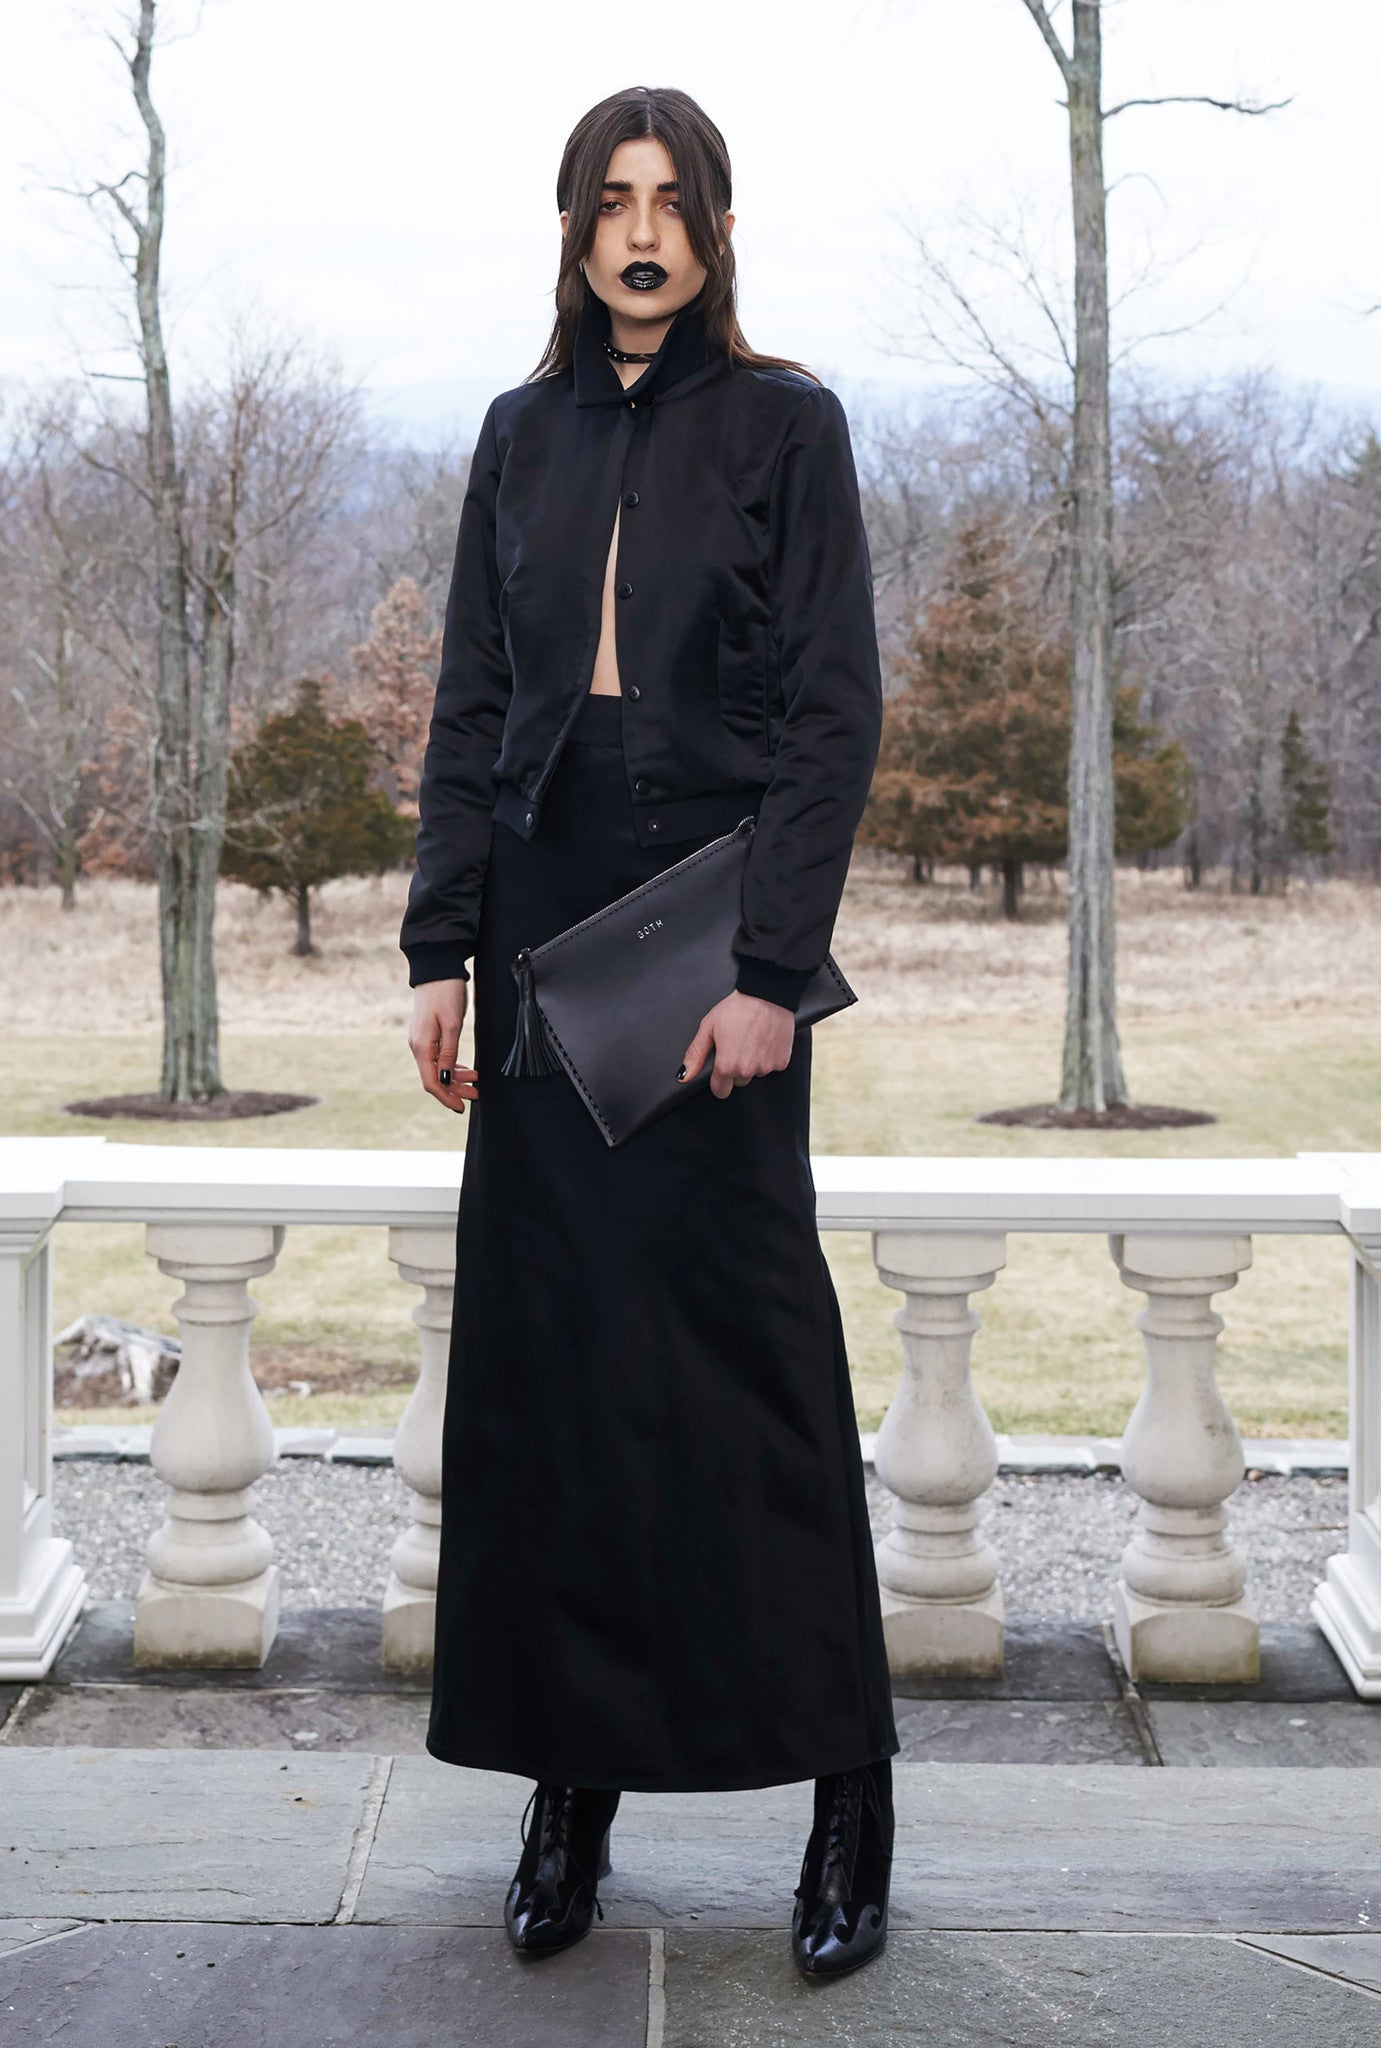 Vanessa M IMG Model Wendy Nichol Clothing Designer Fashion Show Runway 13 Incarnations Autumn Winter 2016 AW16  Handmade in NYC custom tailoring Black Silk Charmeuse Satin Club Bomber Jacket w. White Hand Embroidered Back & Long Bias Cut Skirt in Black Silk Duchess Satin